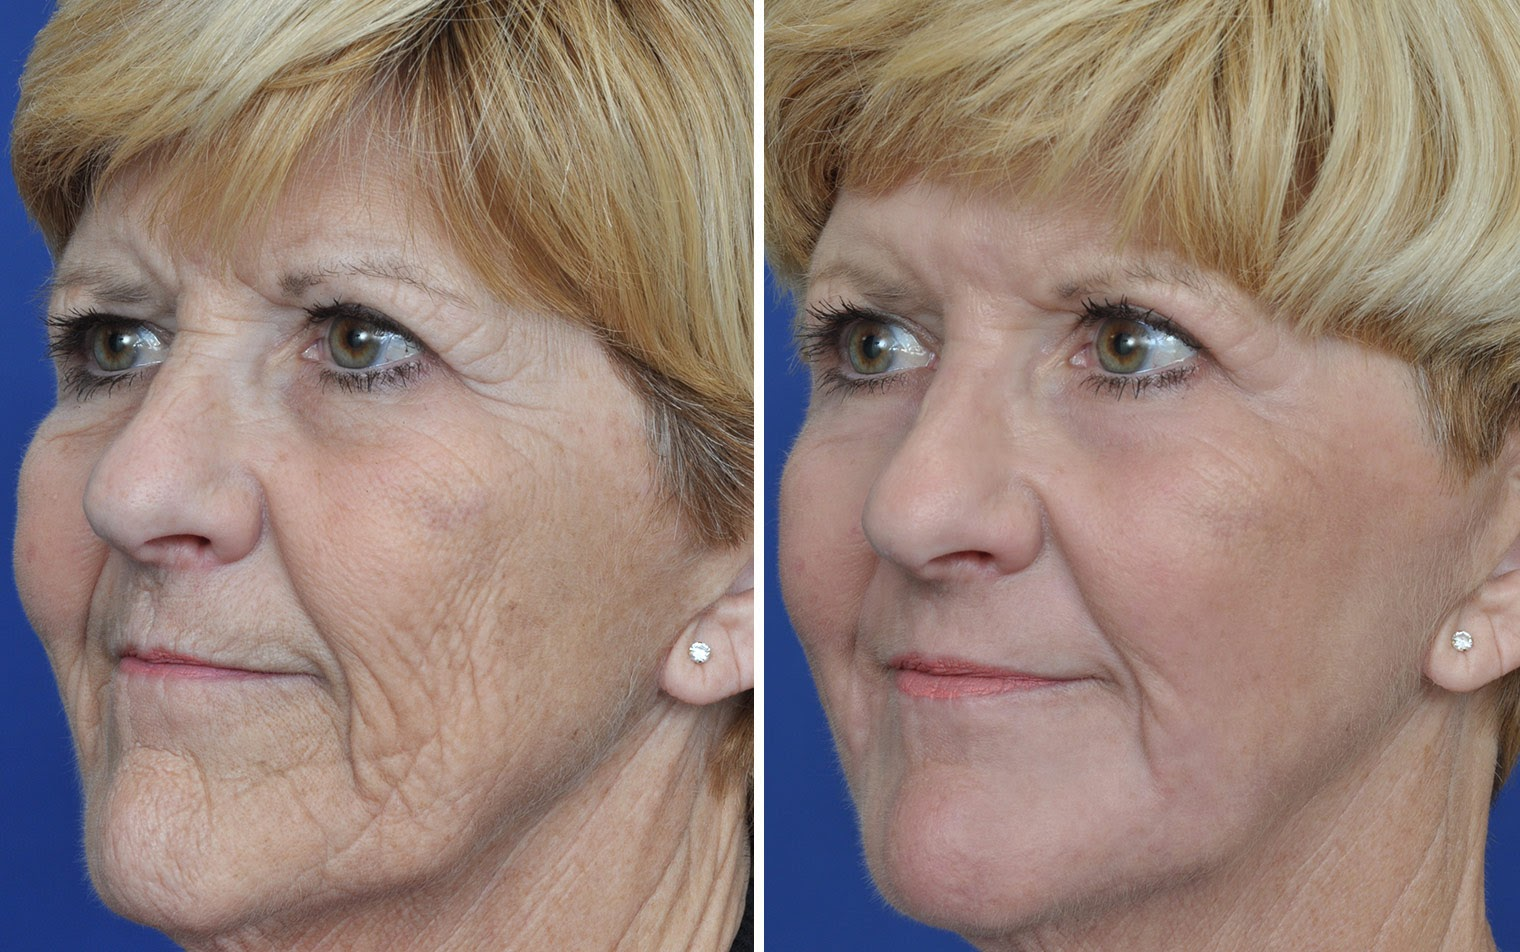 A before and after of an older lady who received laser resurfacing.